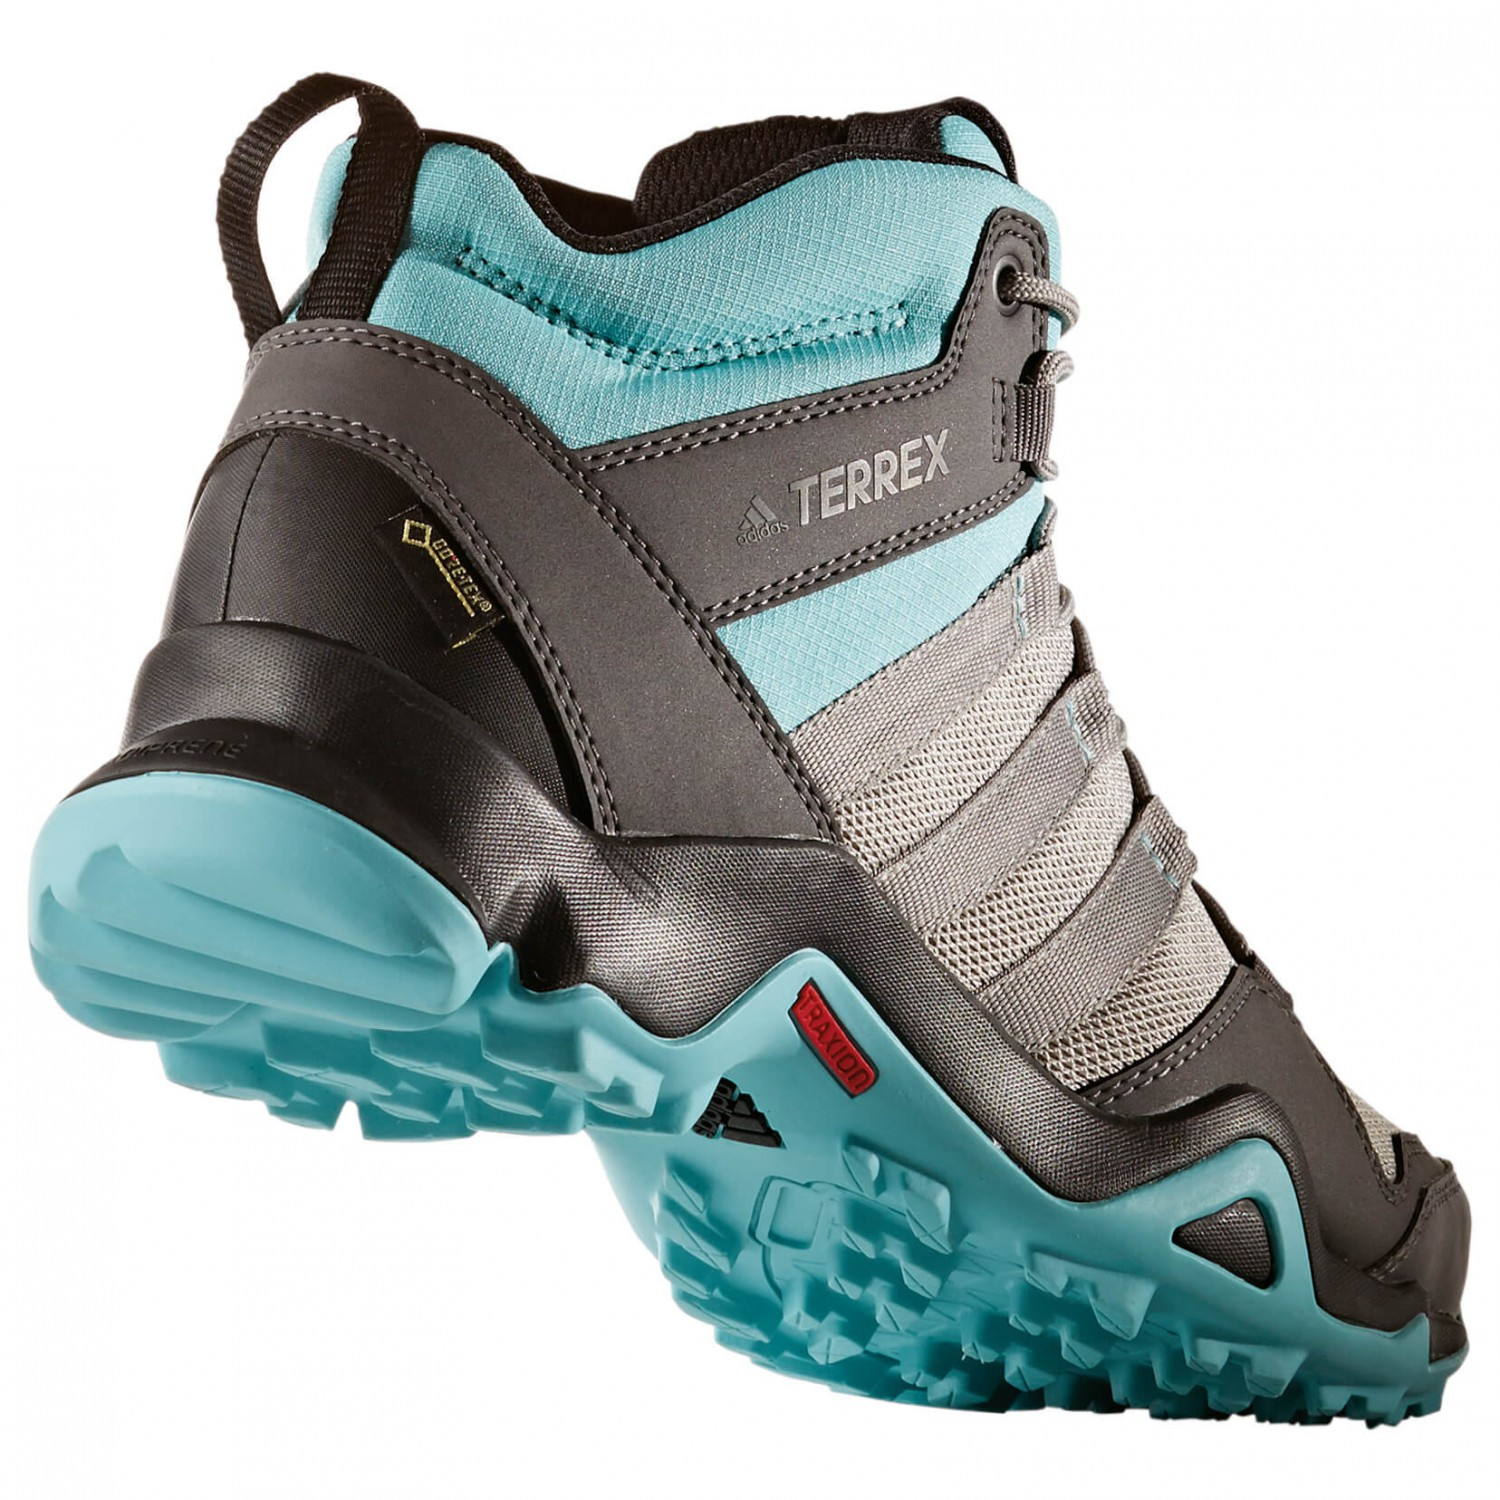 super specials stable quality new concept adidas - Women's Terrex AX2R Mid GTX - Walking boots